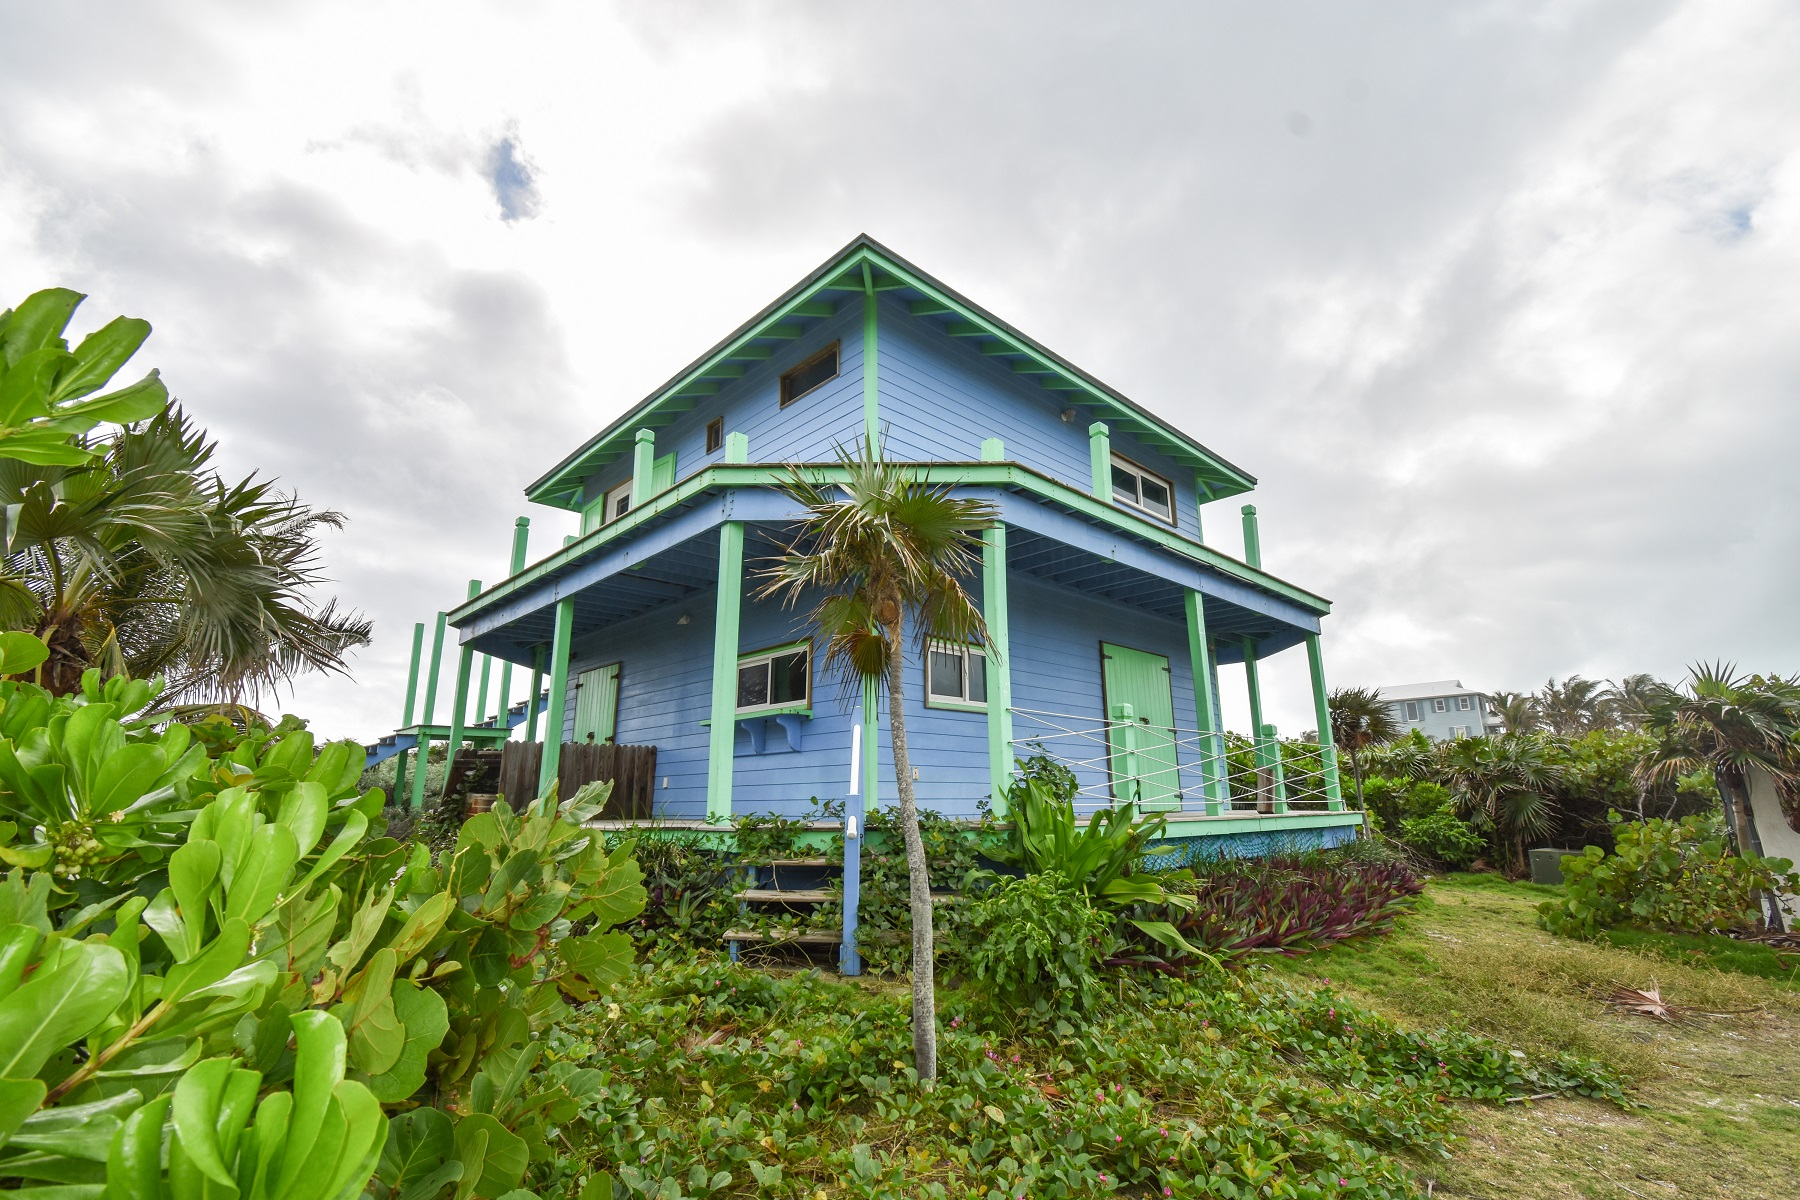 Single Family Home for Sale at Oceanside Beginnings Elbow Cay Hope Town, Abaco, Bahamas